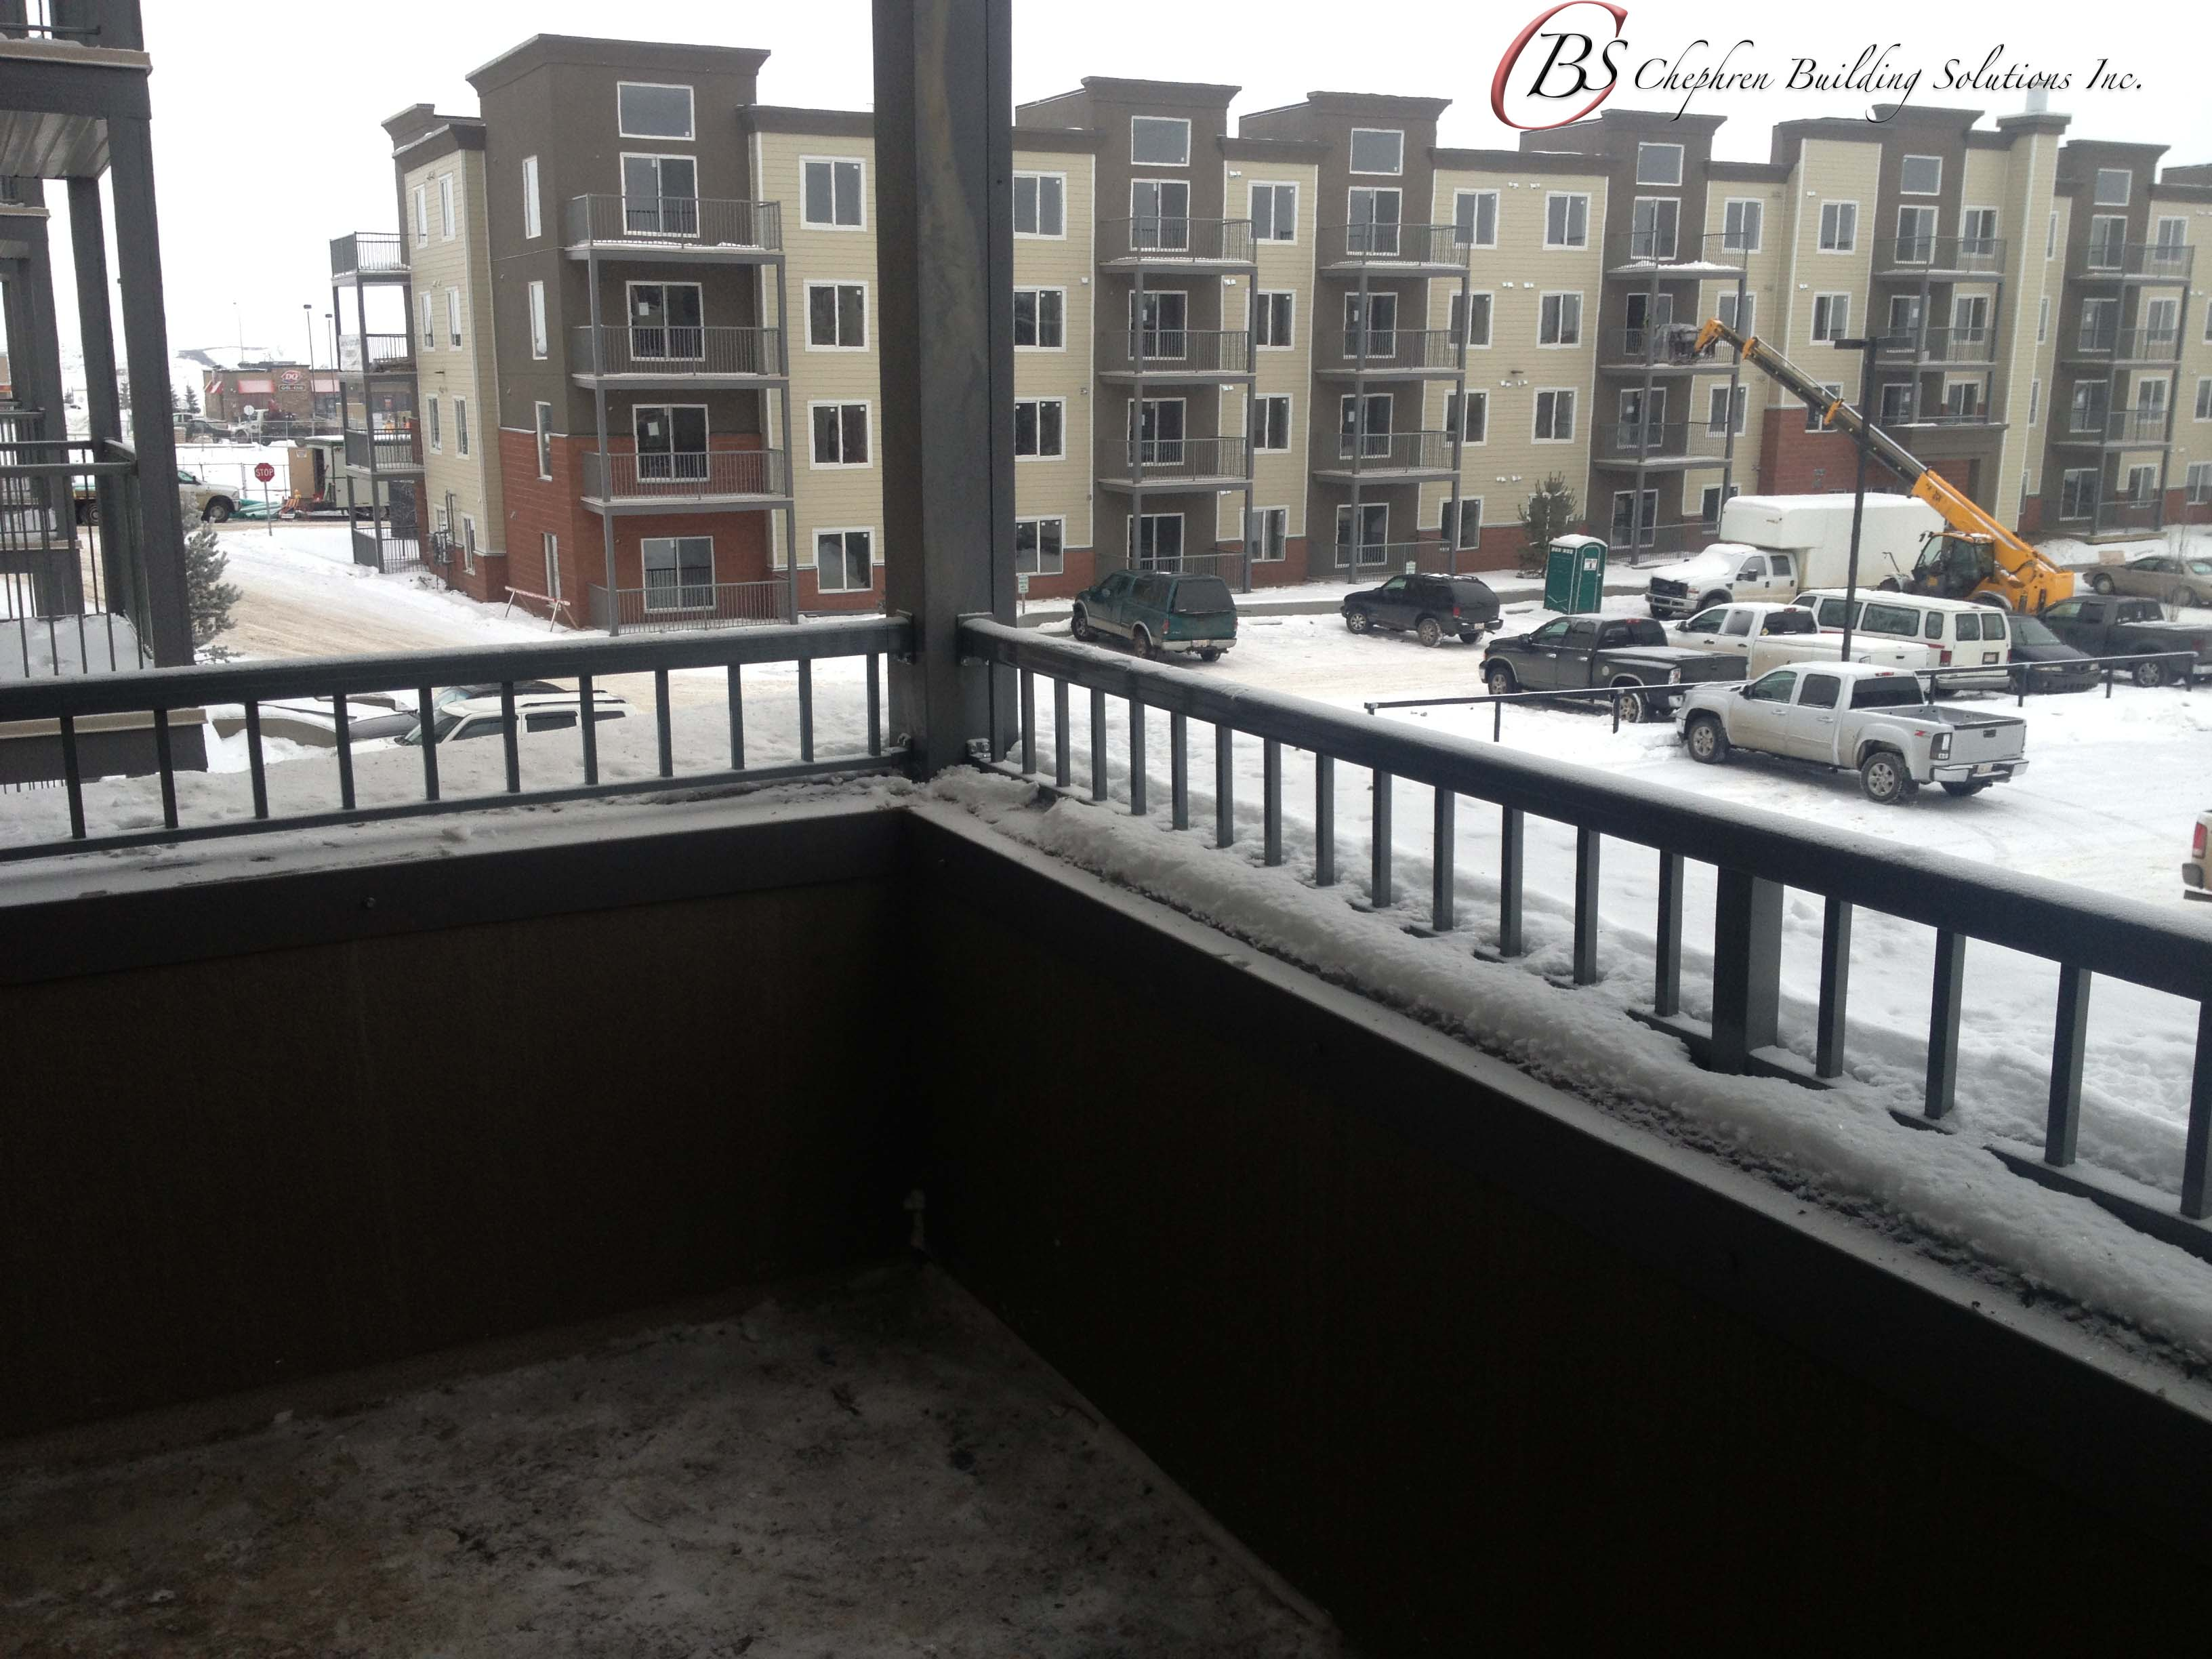 Deck, Railing, and renovation services for commercial projects.